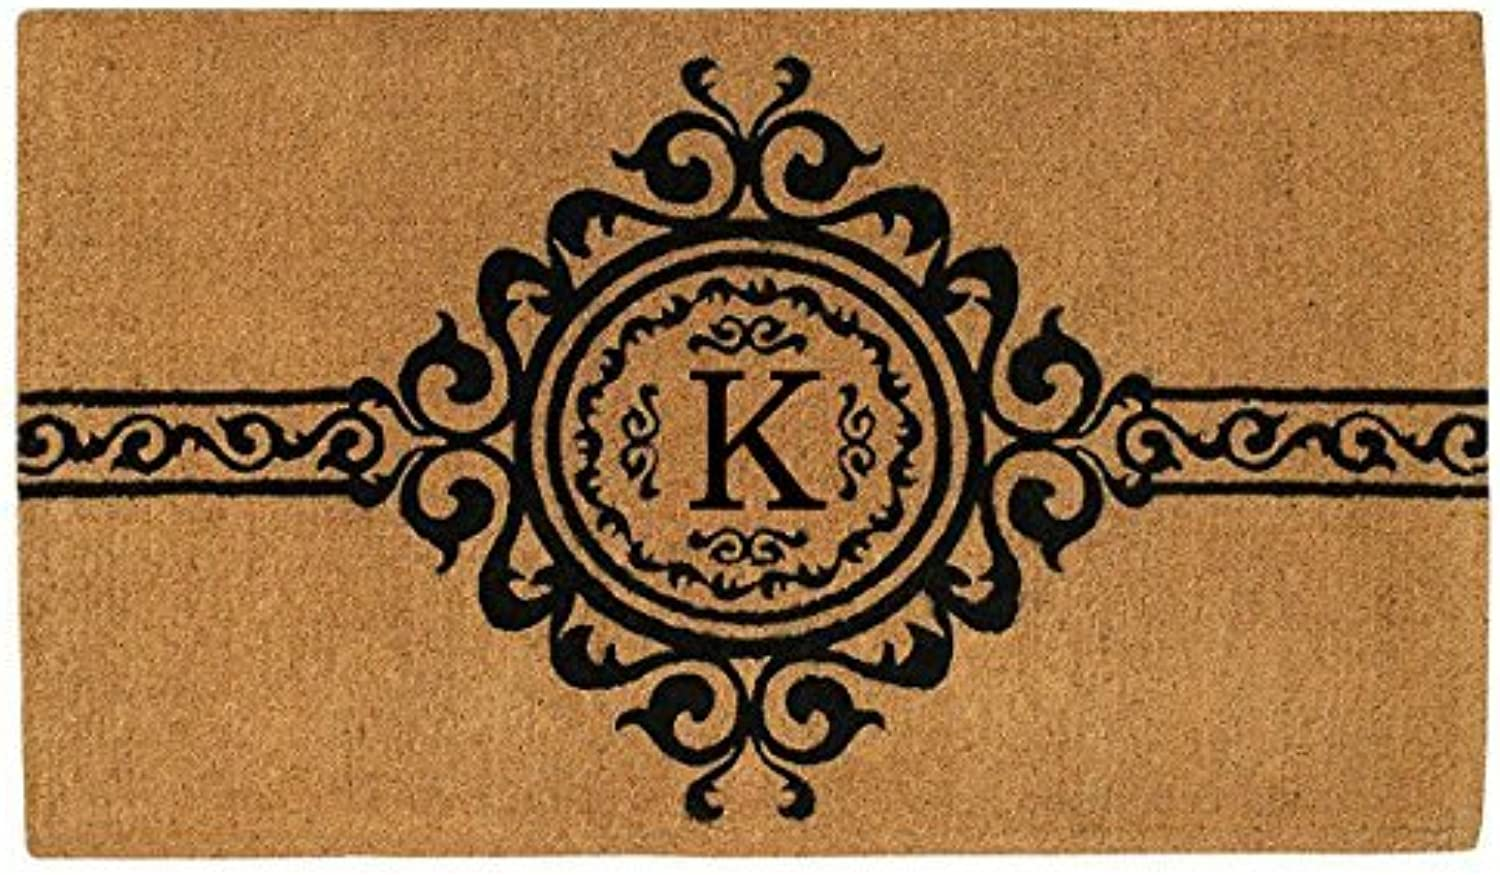 Home & More 180071830K Garbo Extra-Thick Doormat, 18  x 30  x 1.50 , Monogrammed Letter K, Natural Black